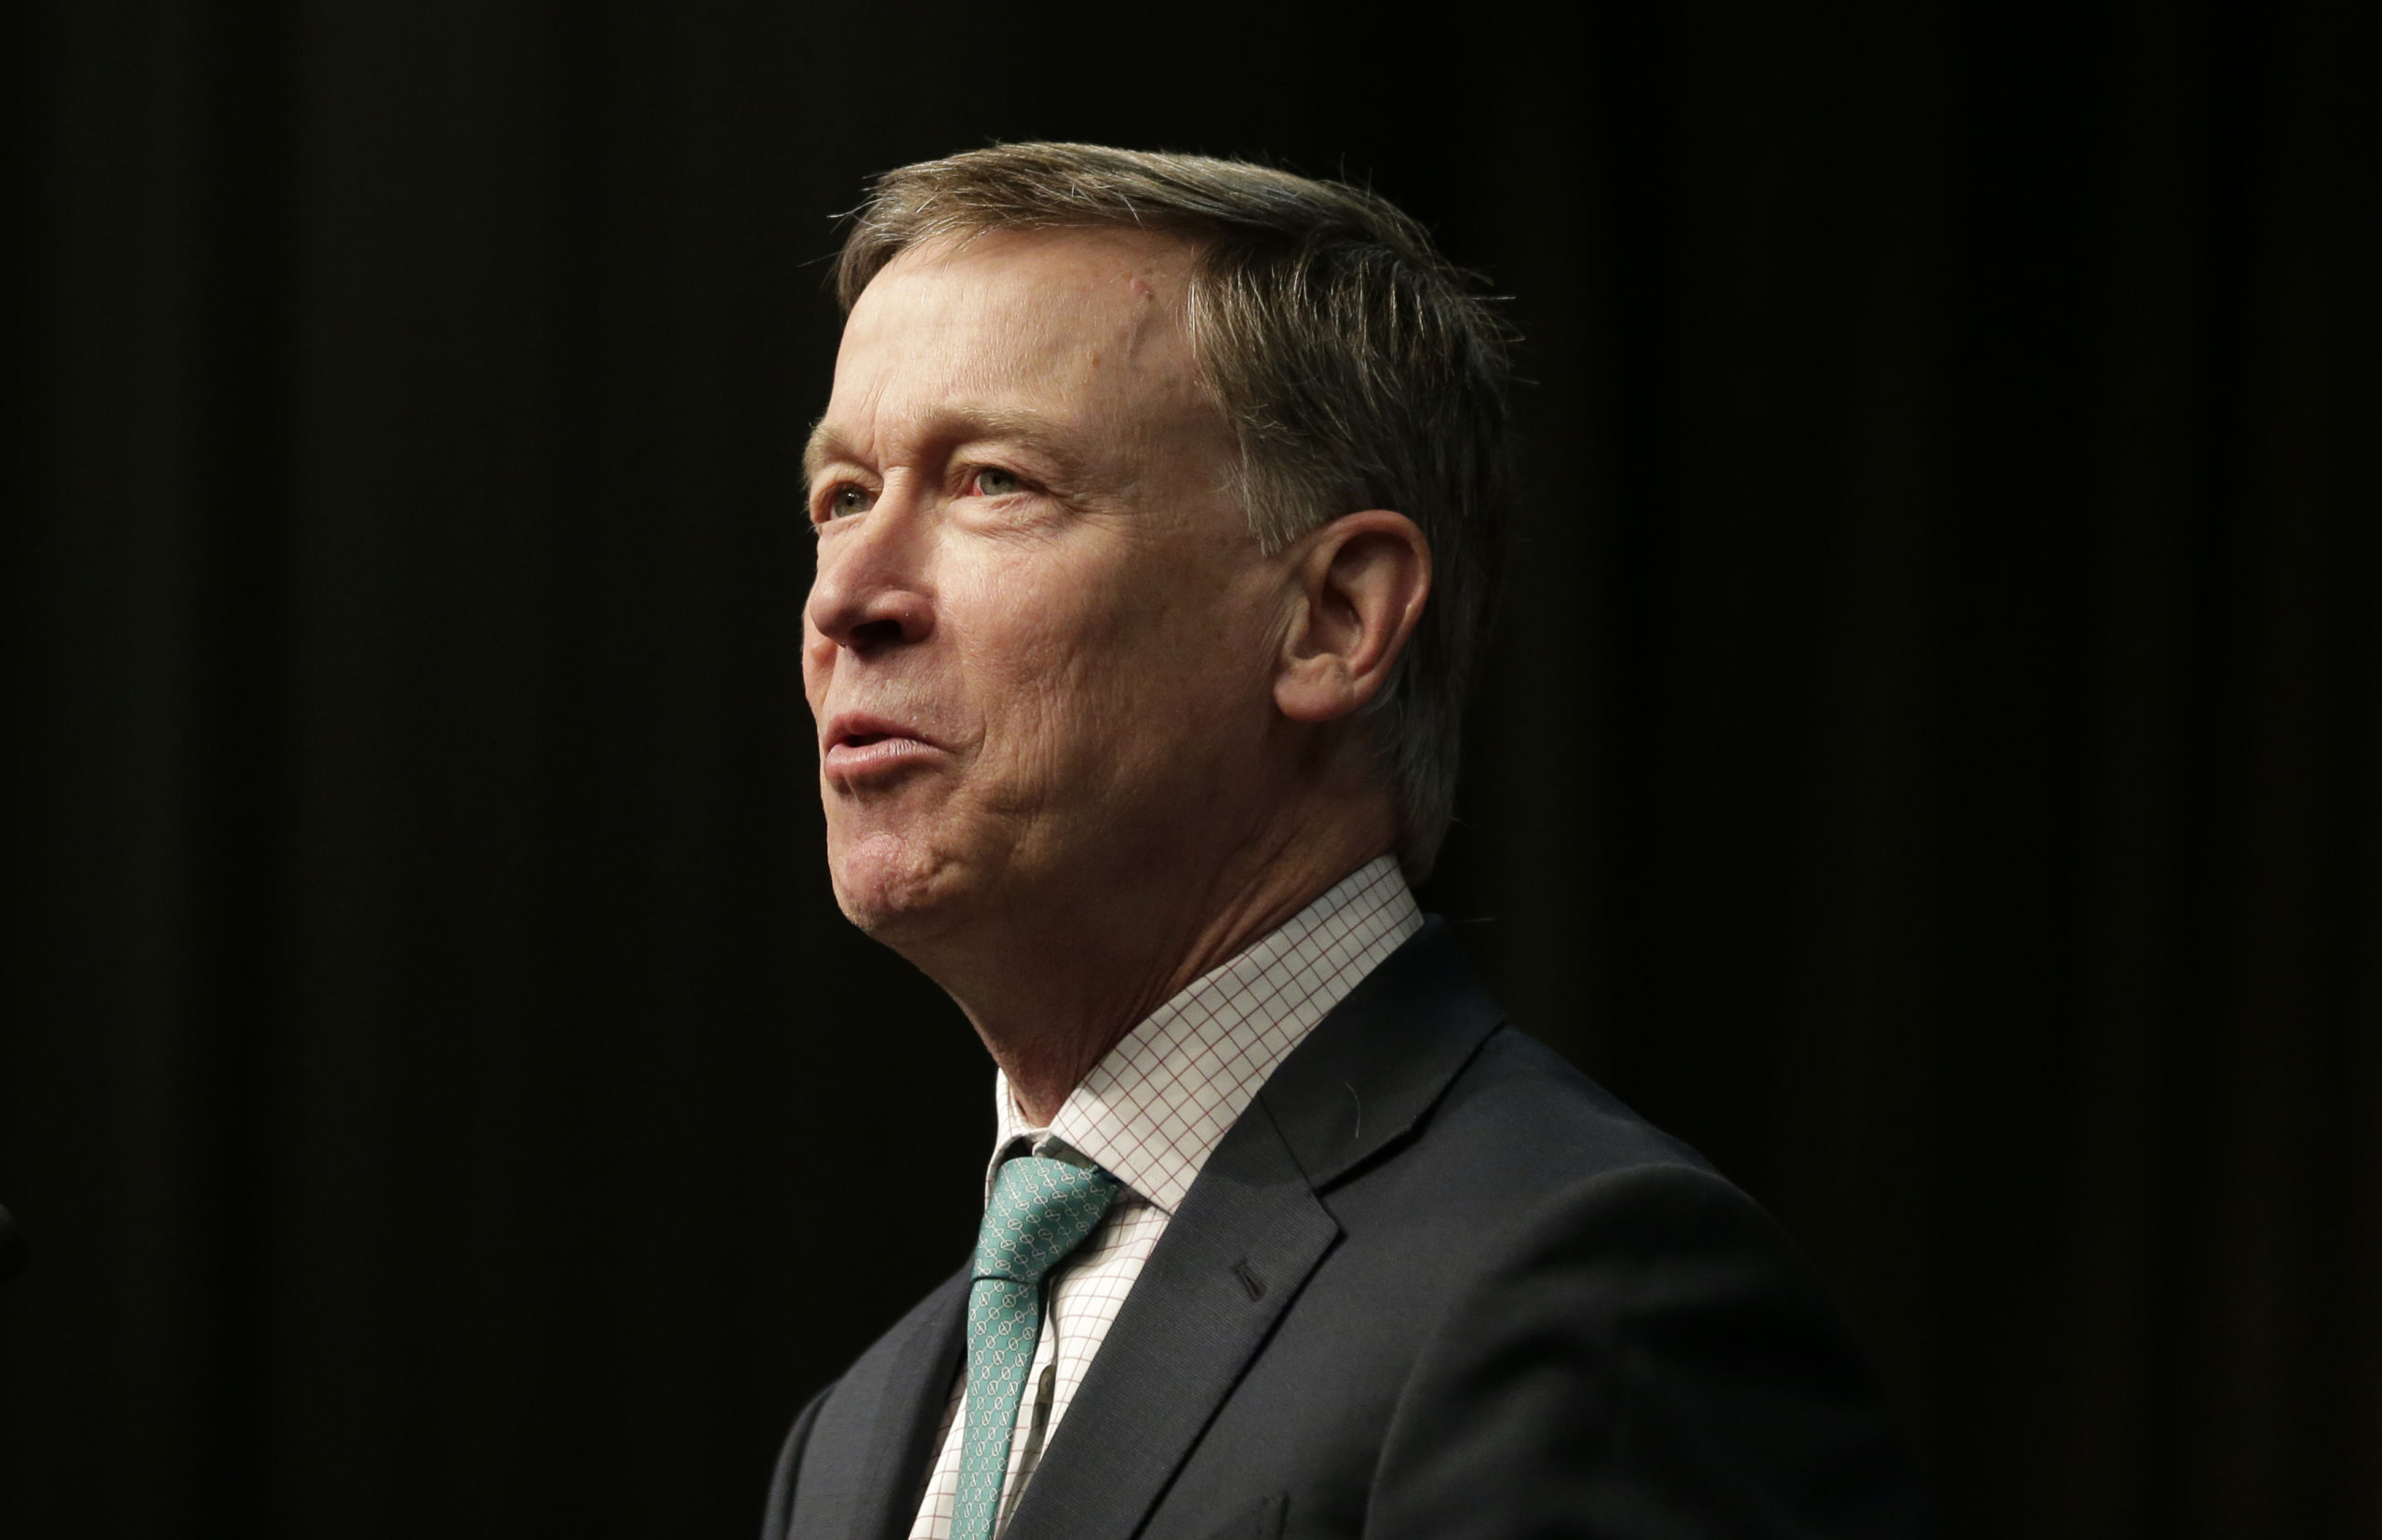 John Hickenlooper National Action Network